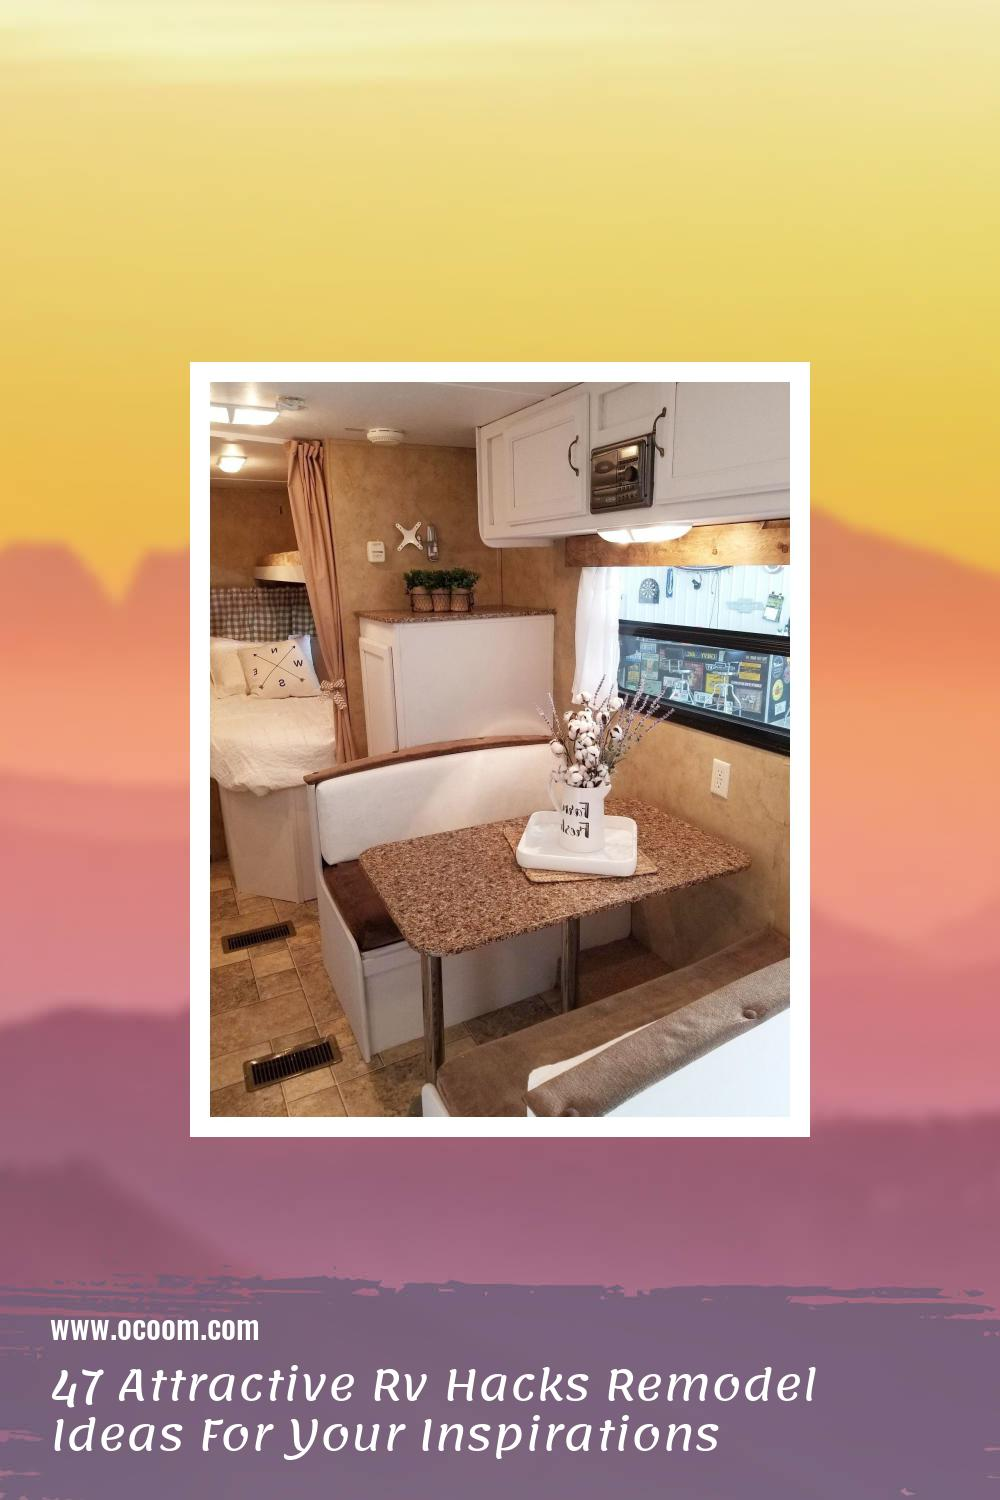 47 Attractive Rv Hacks Remodel Ideas For Your Inspirations 14